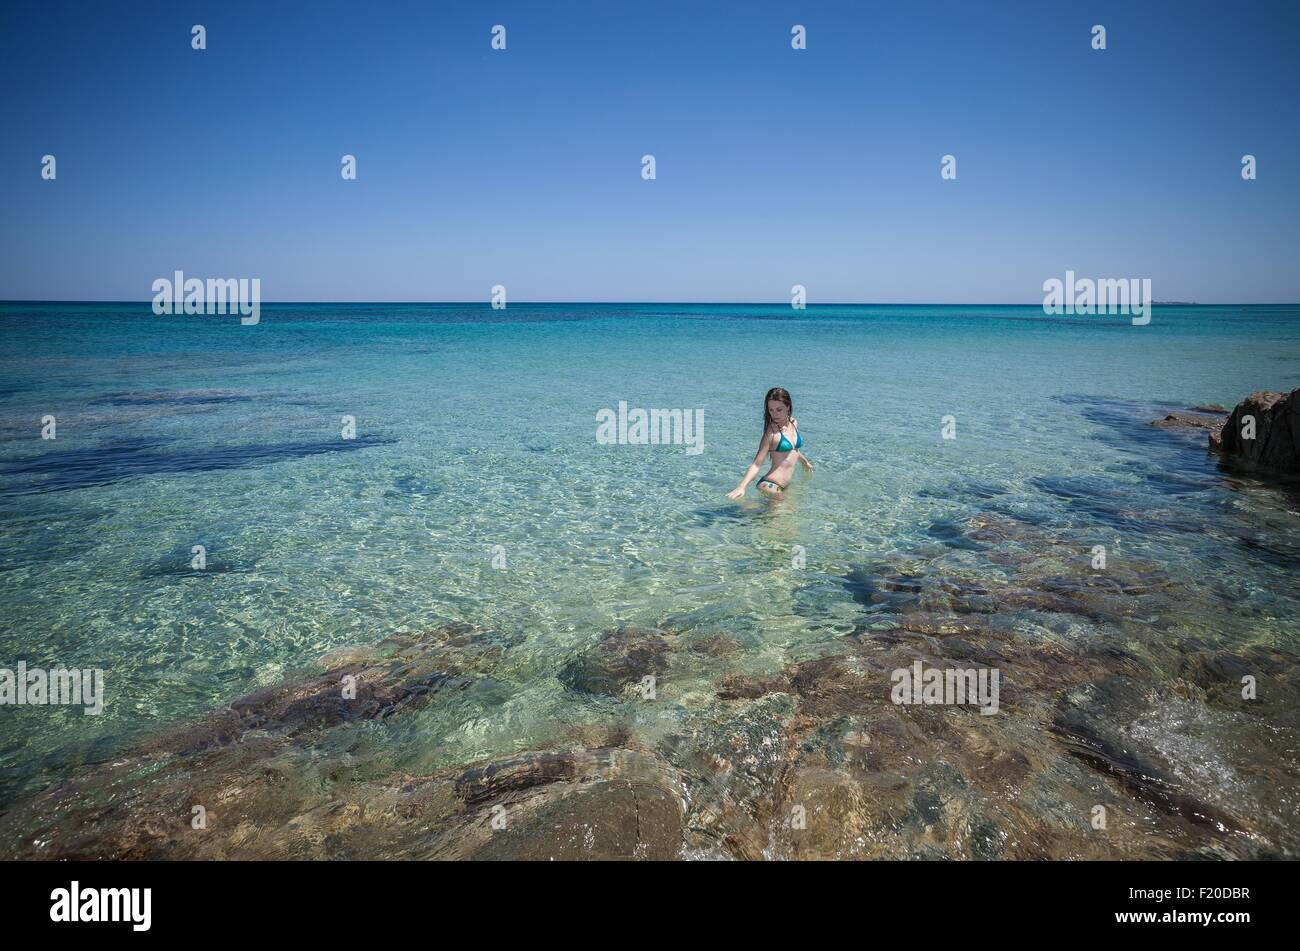 Young woman wearing bikini wading in sea, Cagliari, Sardinia, Italy - Stock Image